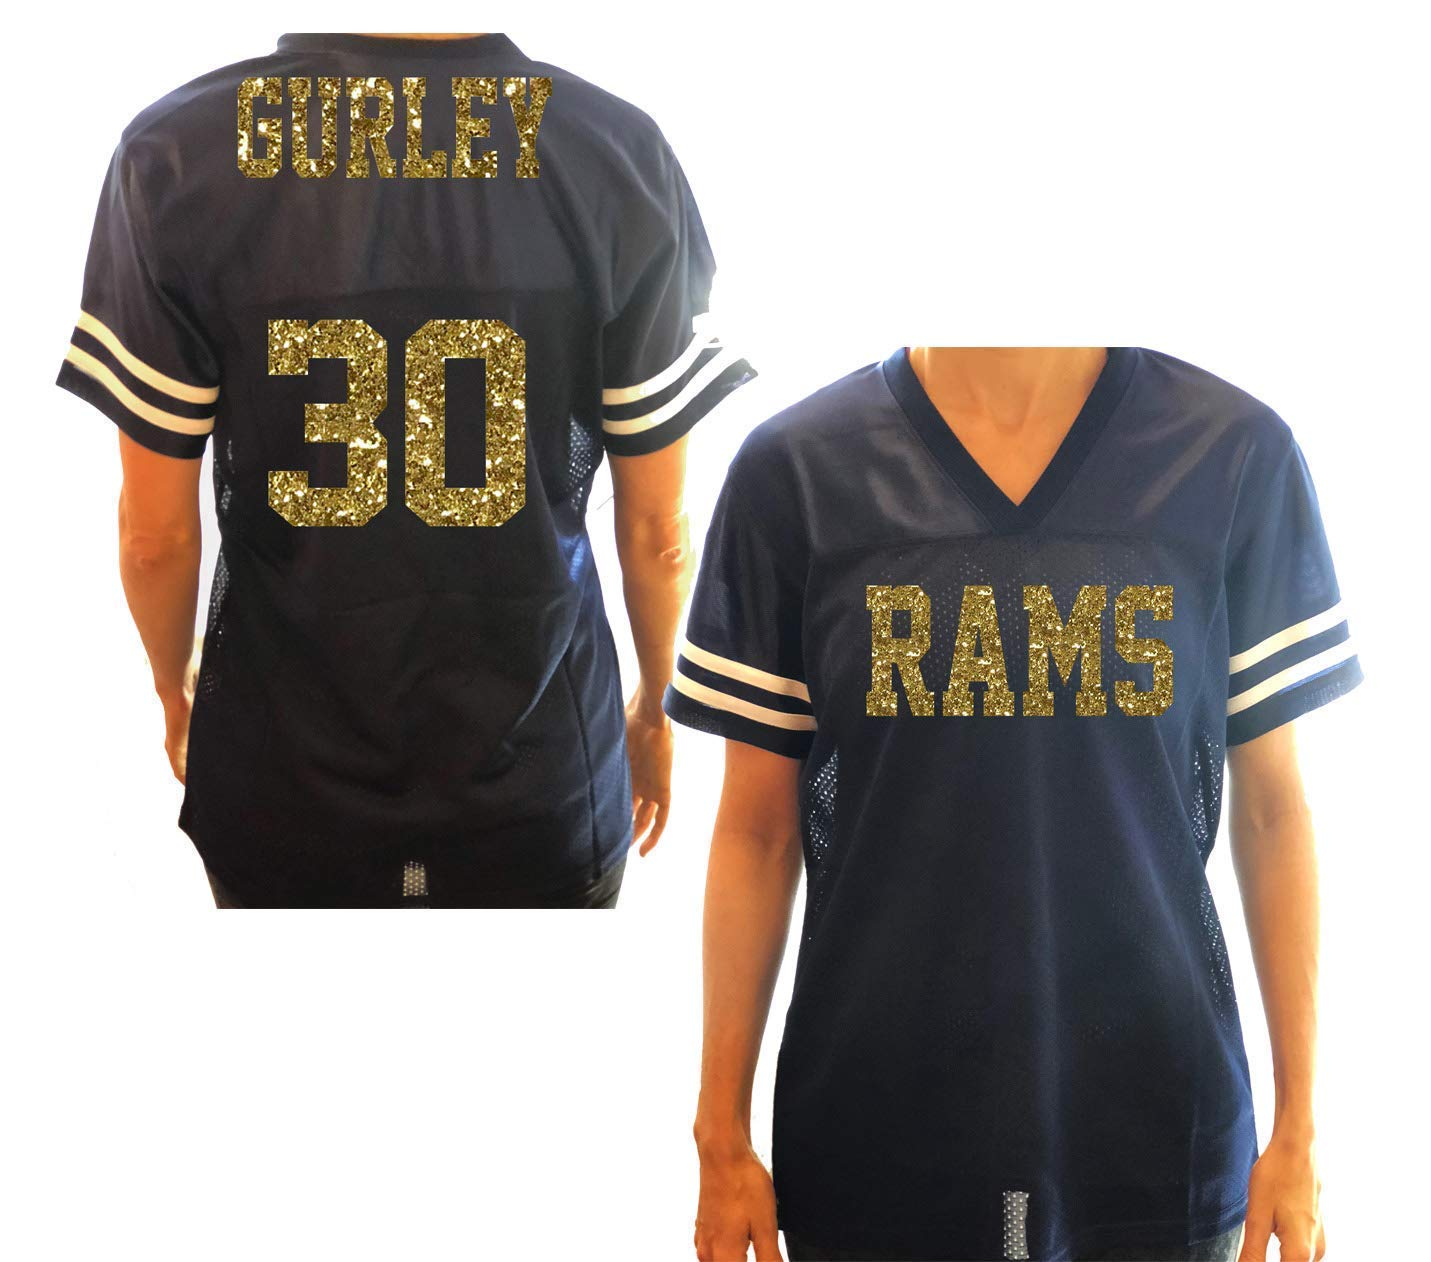 c830608d43b Amazon.com: Rams Women's Jersey Shirt - or Any Football Team and Favorite  Colors - Navy Gold Glitter Silver Black White Red: Handmade